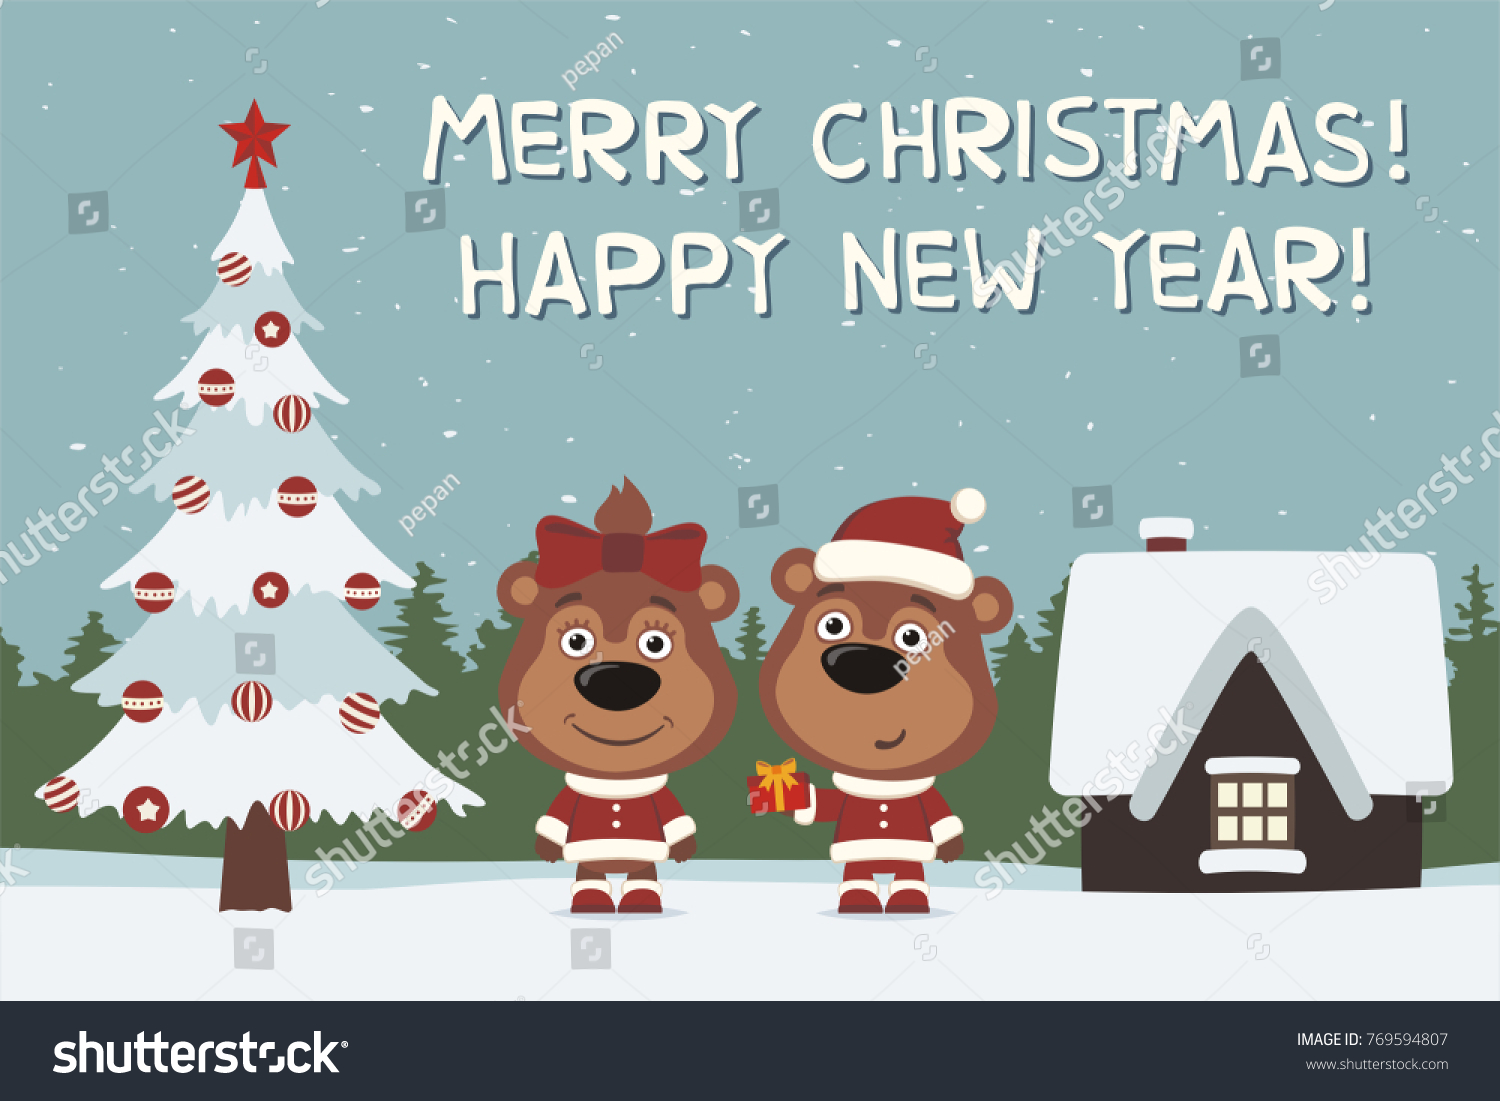 Merry christmas and happy new year greeting card two funny bear id 769594807 m4hsunfo